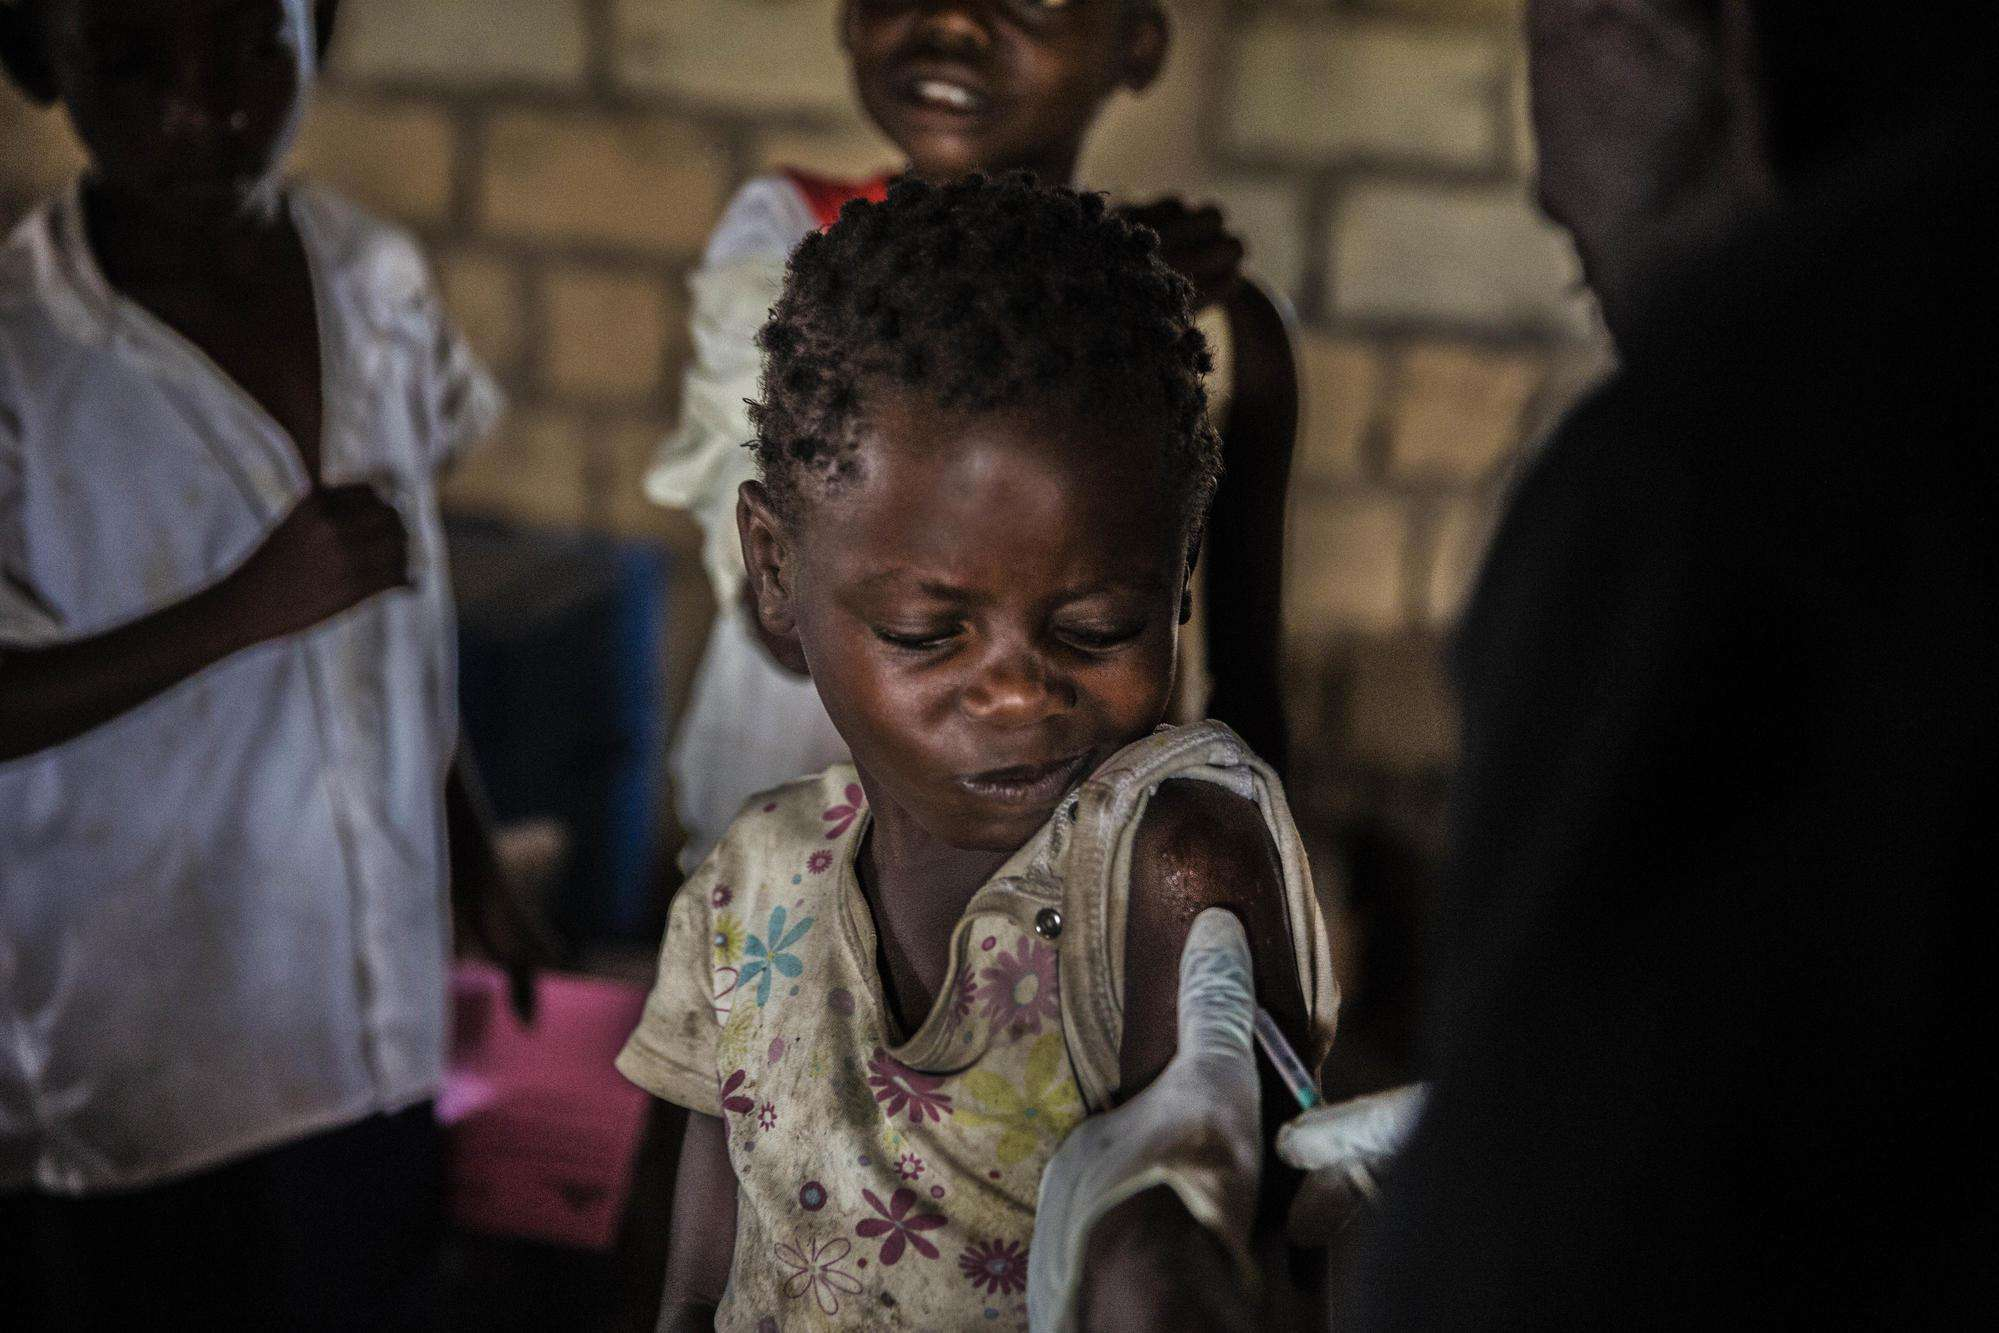 A child is immunized against measles during an MSF vaccination campaign in Katanga, DRC.